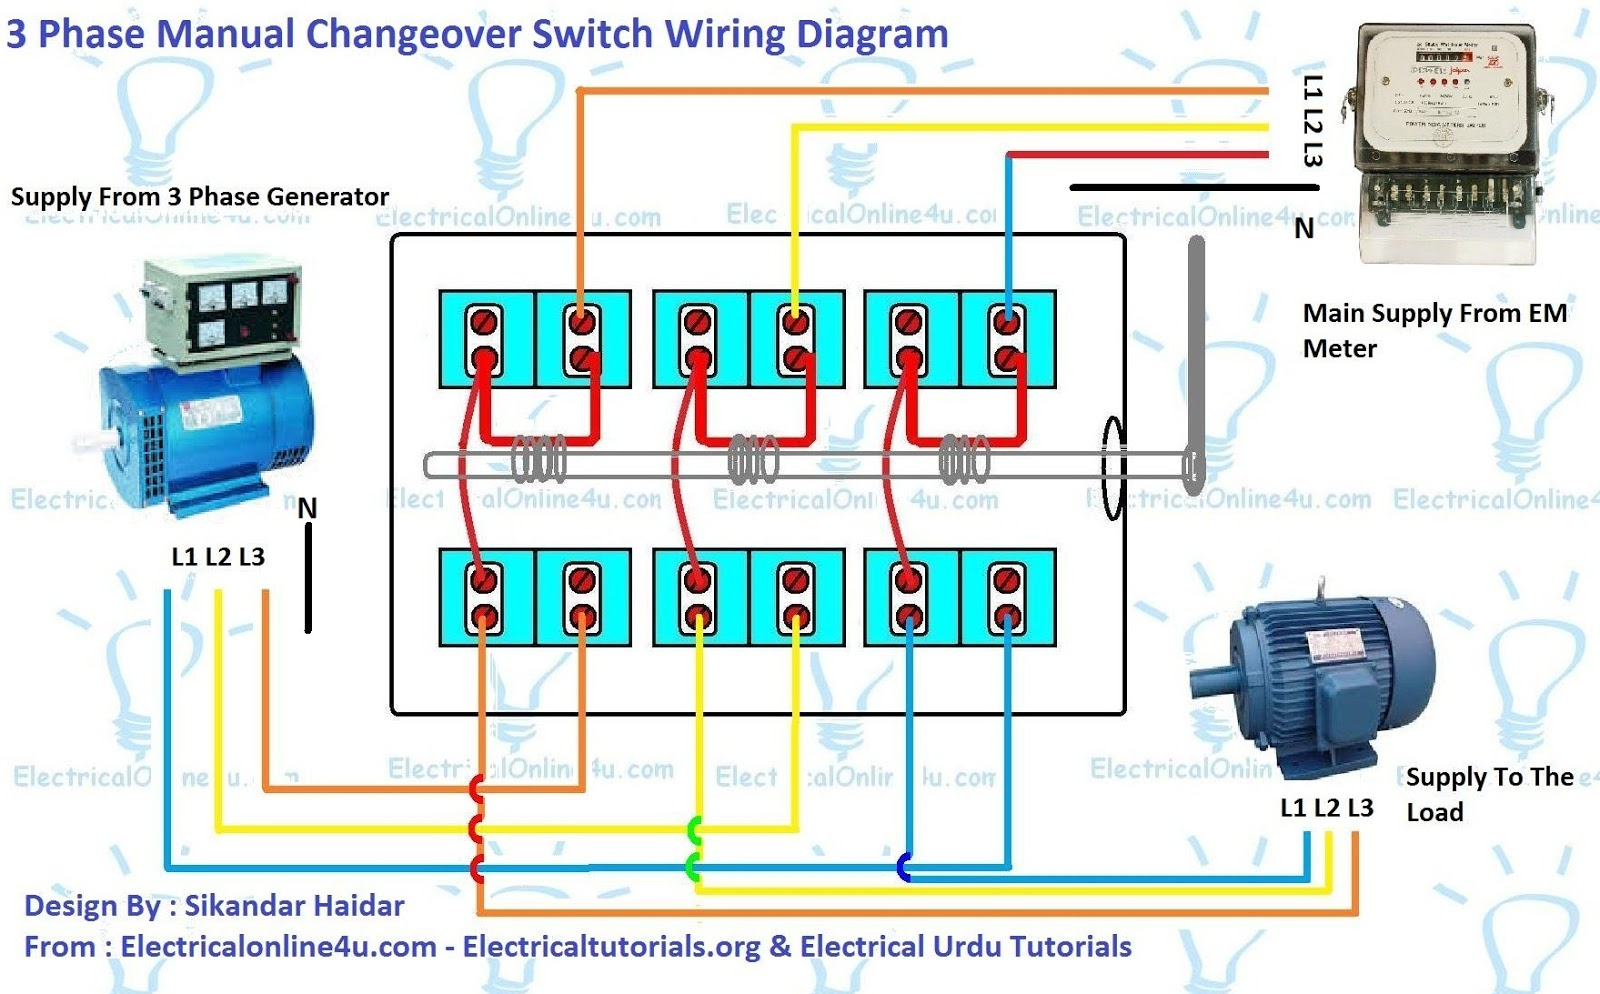 3 Phase Manual Changeover Switch Wiring Diagram For Generator ...